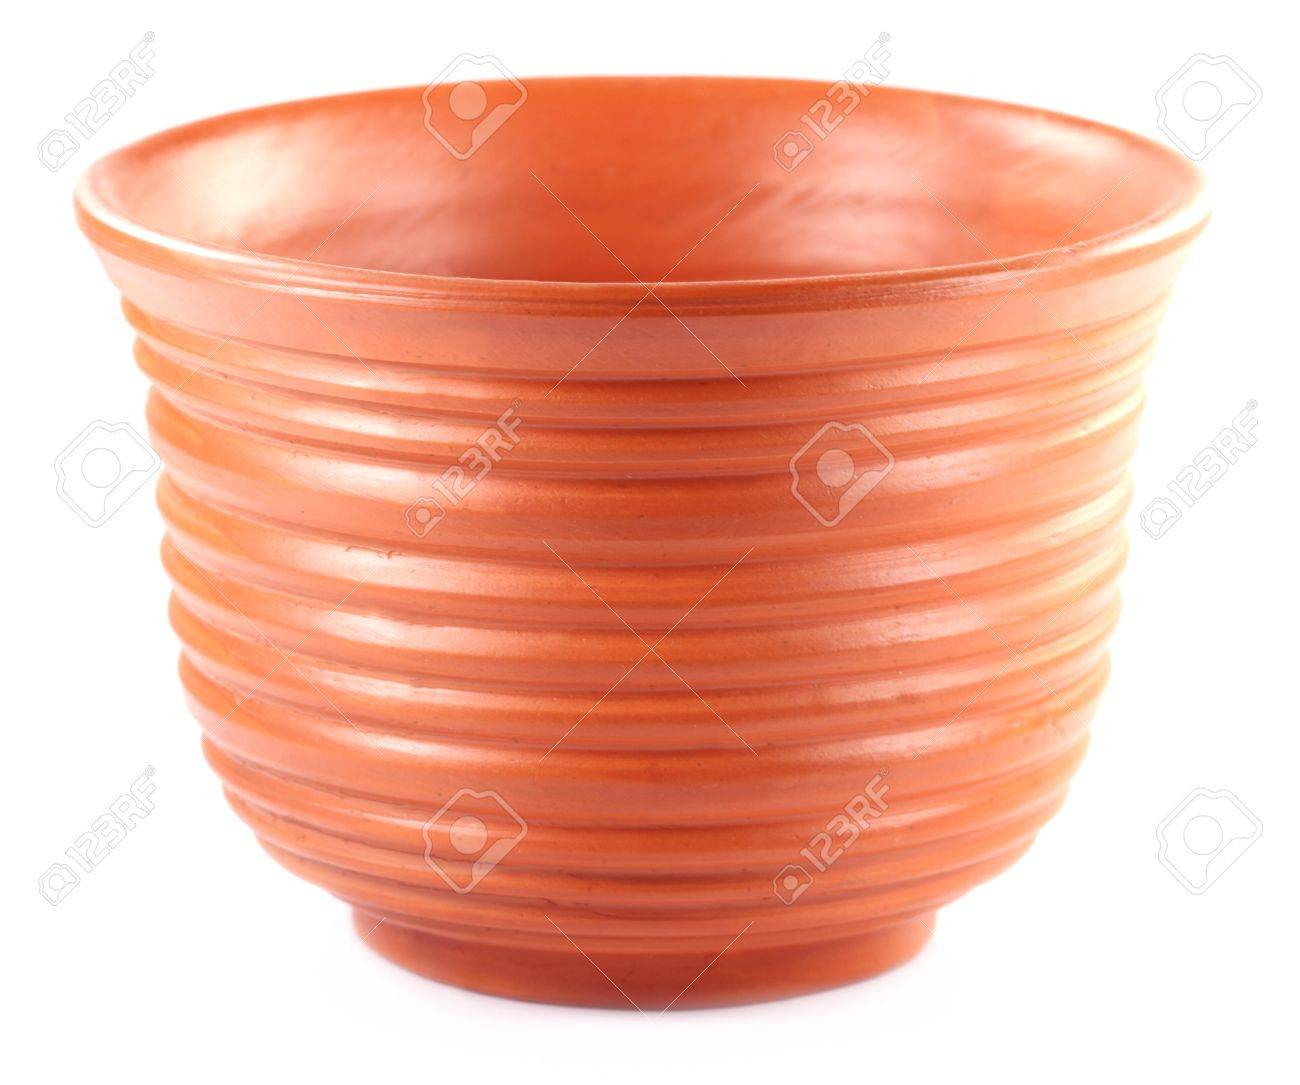 Clay pottery used as flower vase stock photo picture and royalty clay pottery used as flower vase stock photo 16560774 reviewsmspy